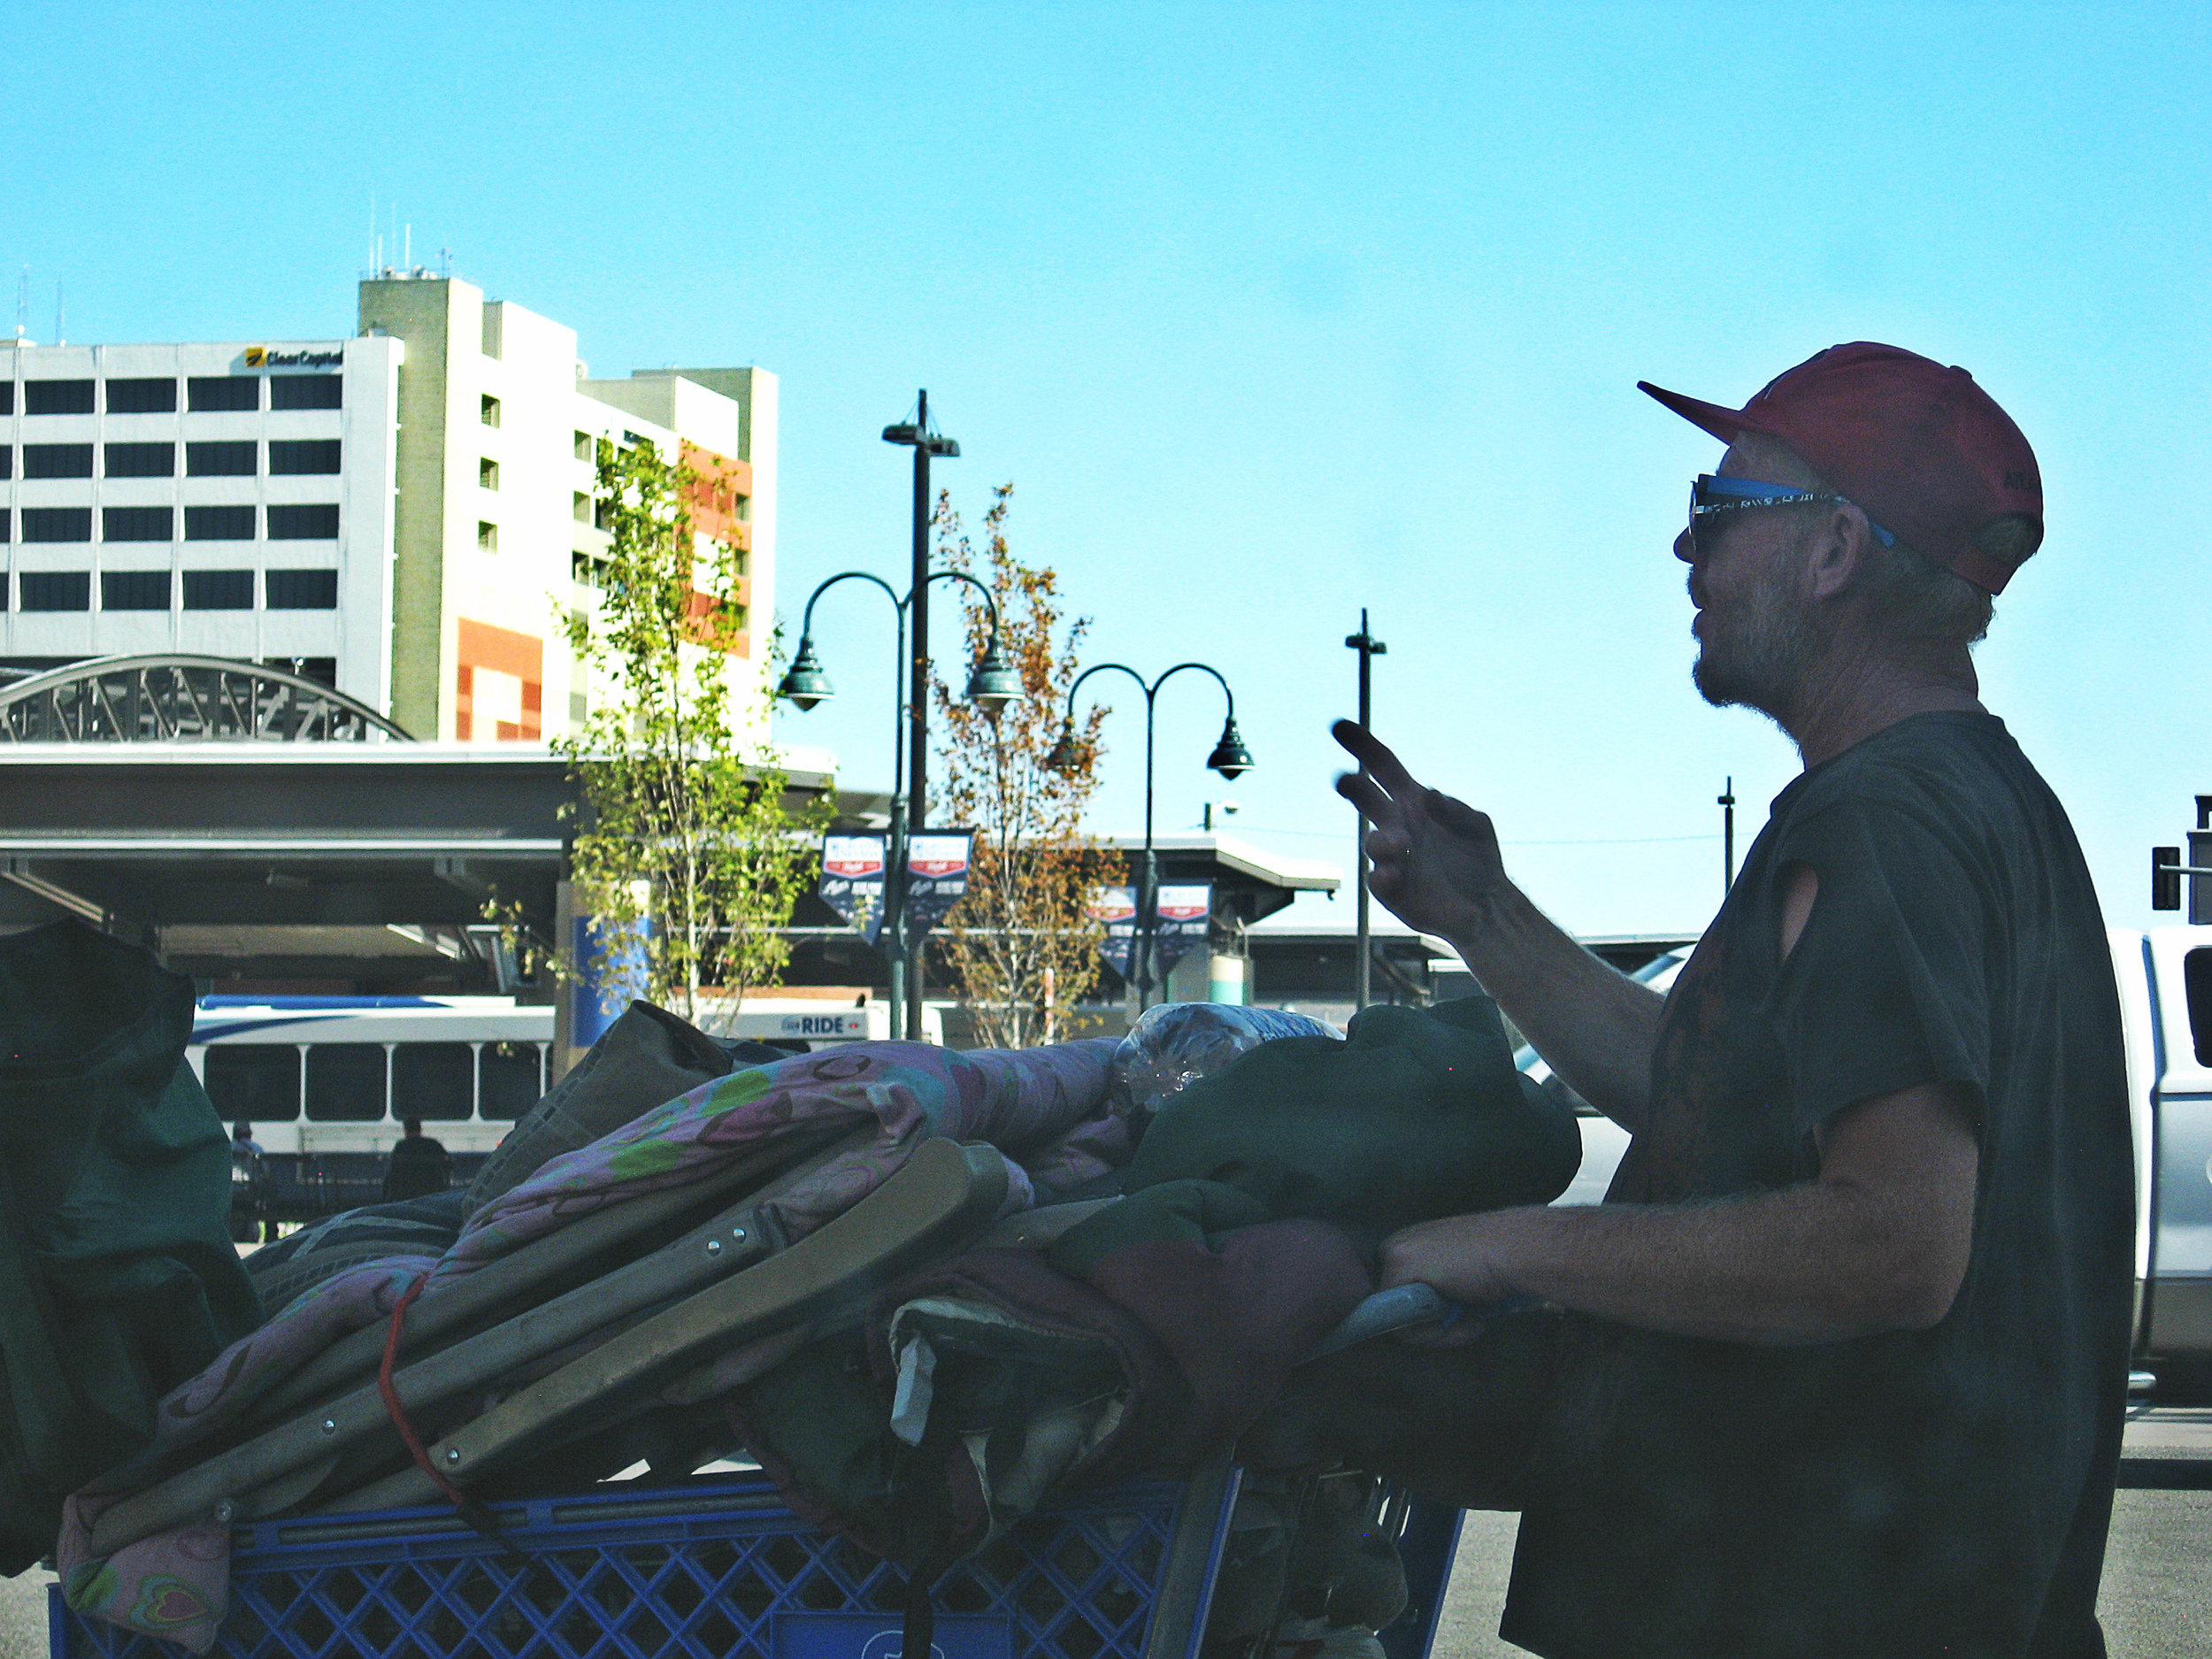 As more and more people are being displaced or made homeless by new developments and rising prices in Reno, which direction is the Biggest Little City headed?